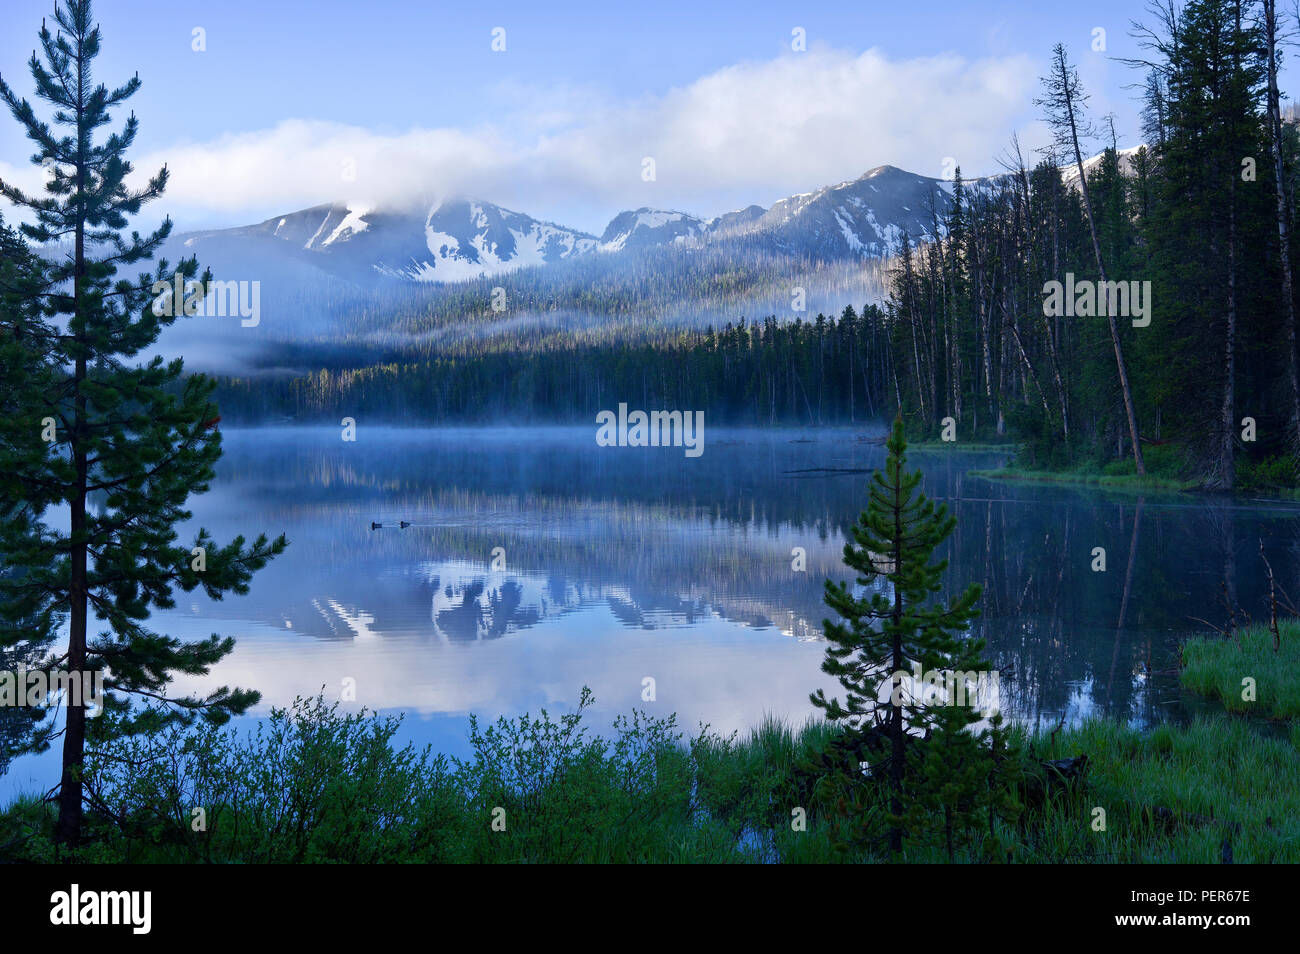 Sylvan Lake in Yellowstone National Park on a misty dawn morning, with ducks swimming in the lake and reflections of mountains. - Stock Image